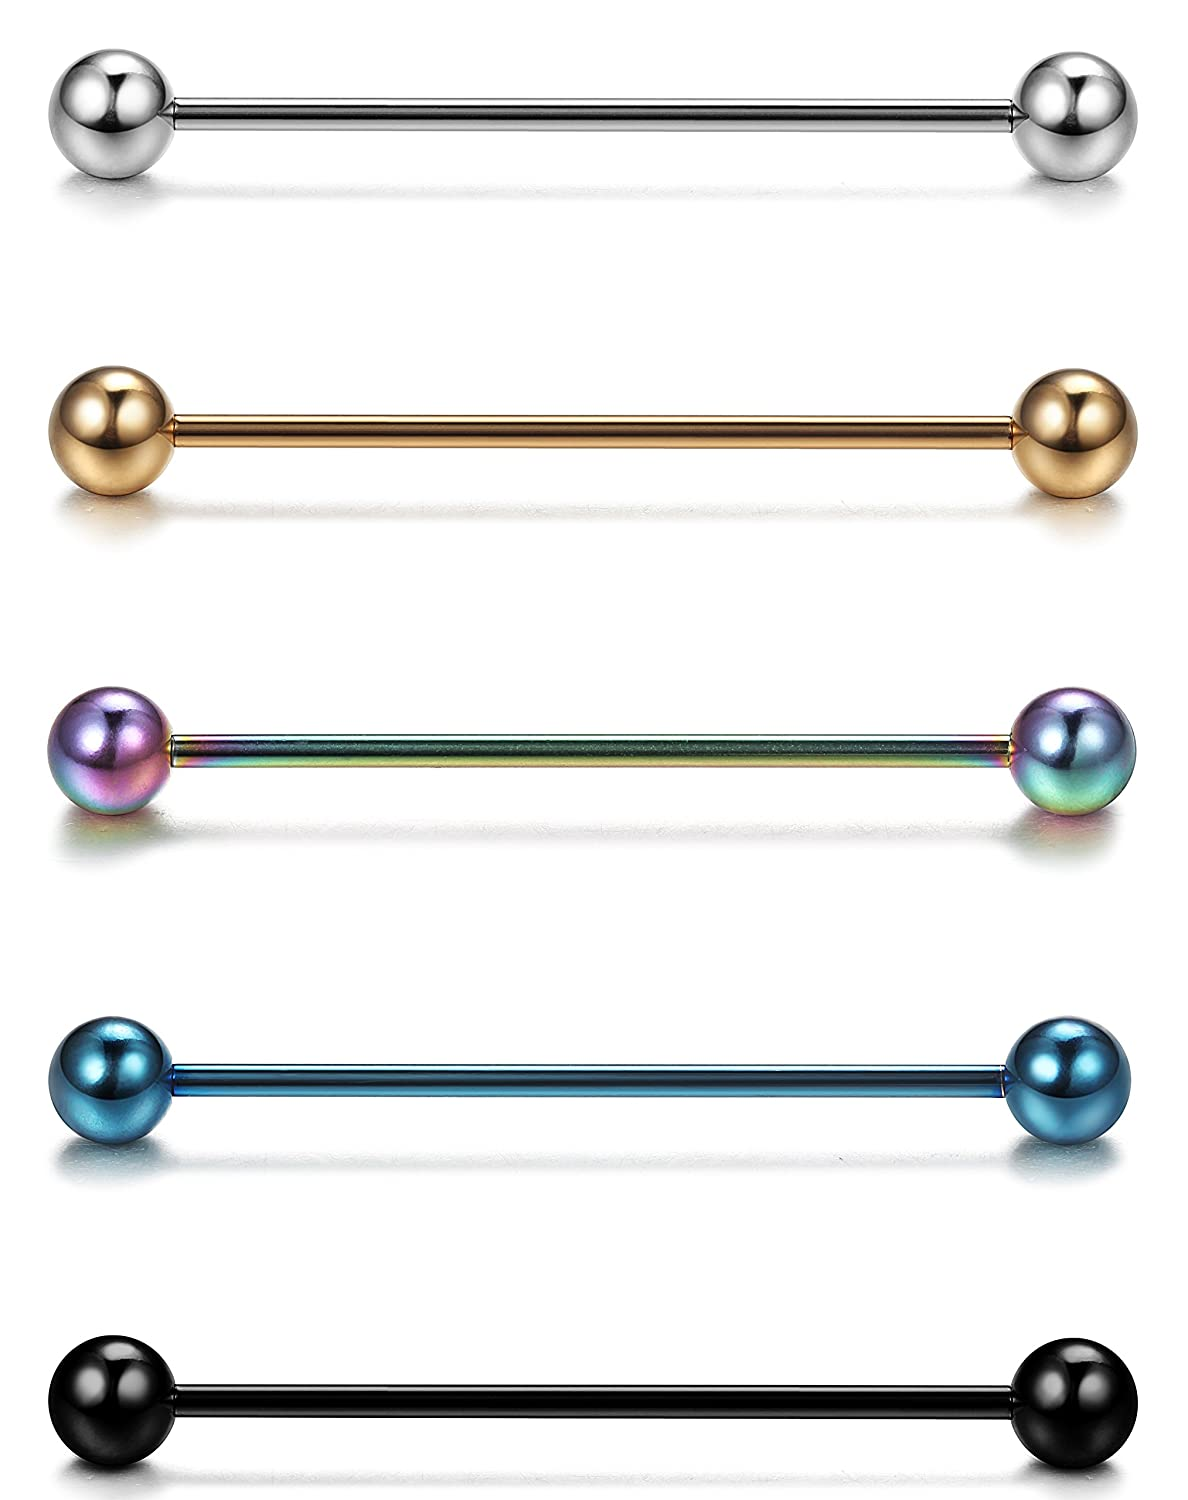 FUNRUN JEWELRY 5-6PCS 14G Stainless Steel Industrial Barbell Piercing Jewelry Piercing Earrings Set CCP003-6